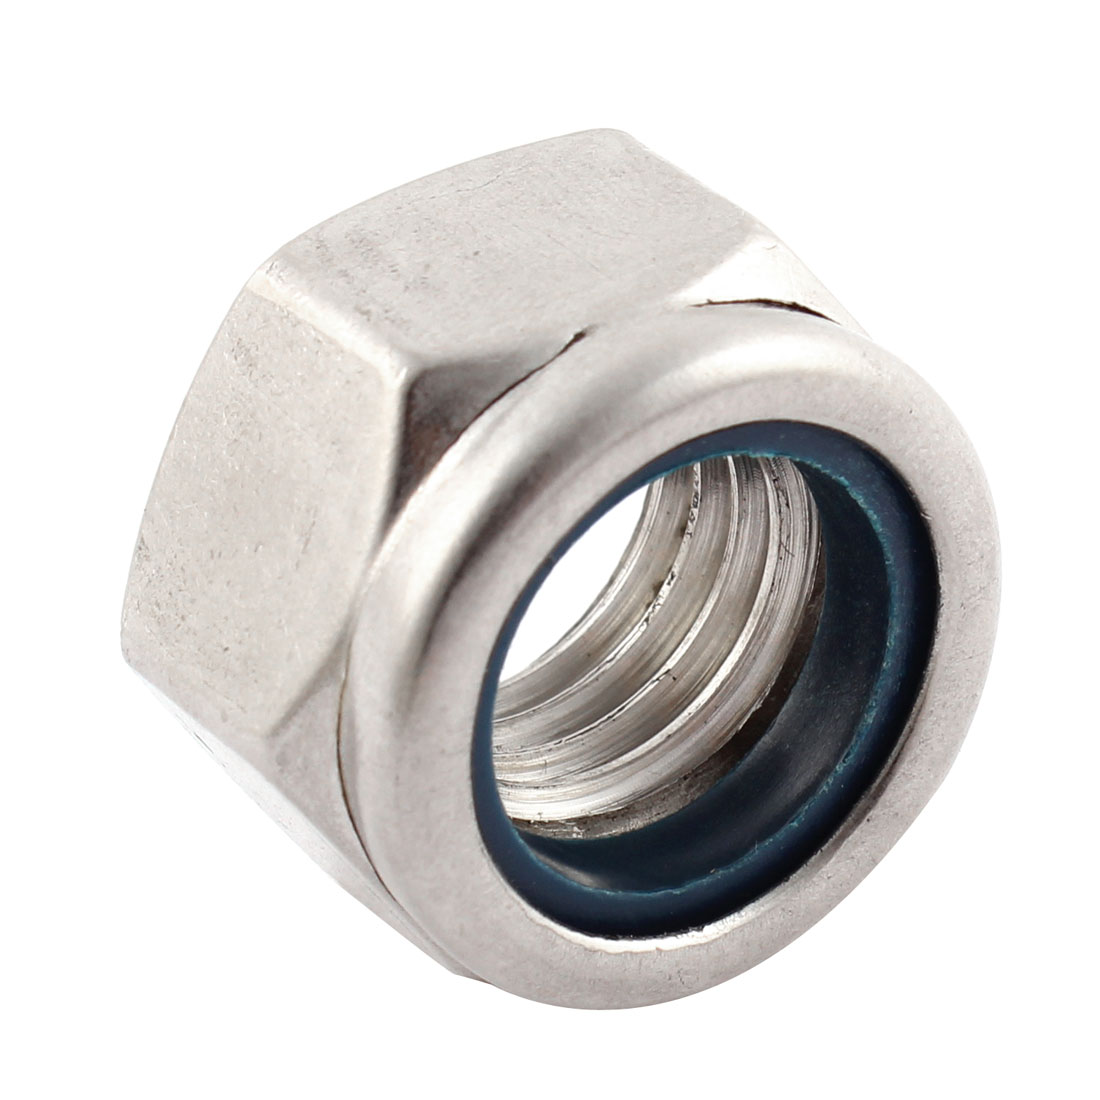 M18x2.5mm Metric Stainless Steel Anti-loose Nylon Insert Lock Hex Nuts